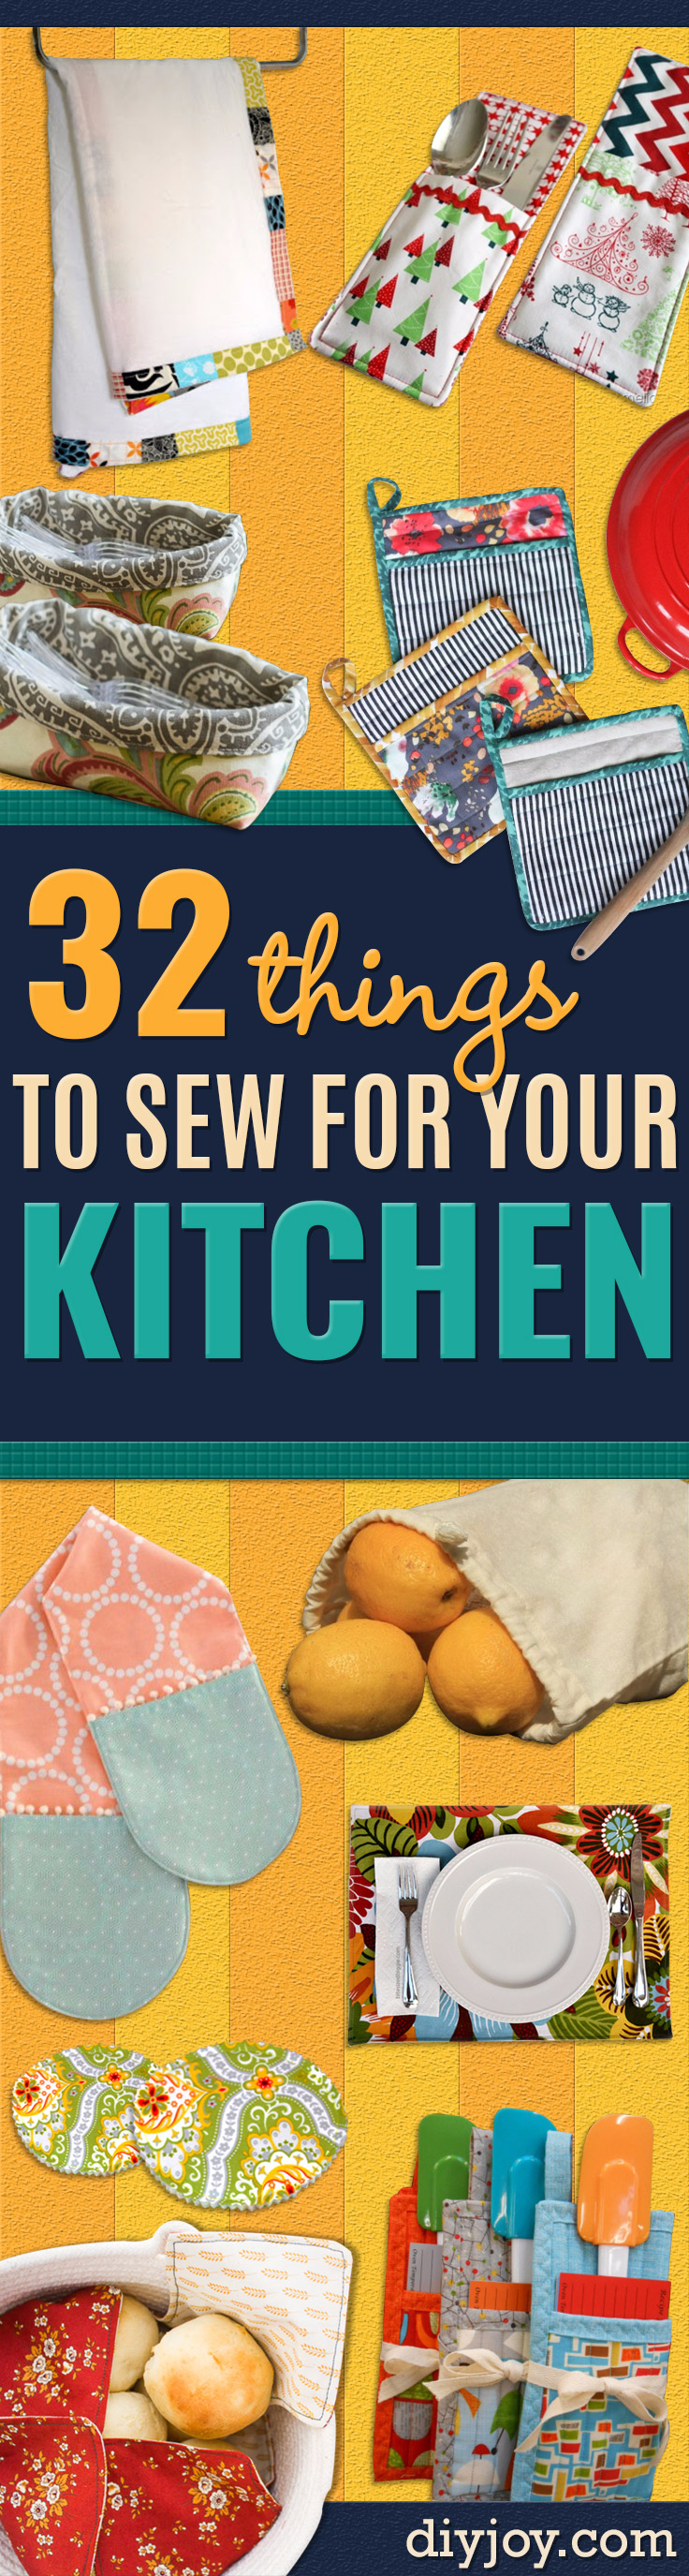 DIY Sewing Projects for the Kitchen - Easy Sewing Tutorials and Patterns for Towels, napkinds, aprons and cool Christmas gifts for friends and family - Rustic, Modern and Creative Home Decor Ideas #sewing #crafts #diykitchen #sewingprojects